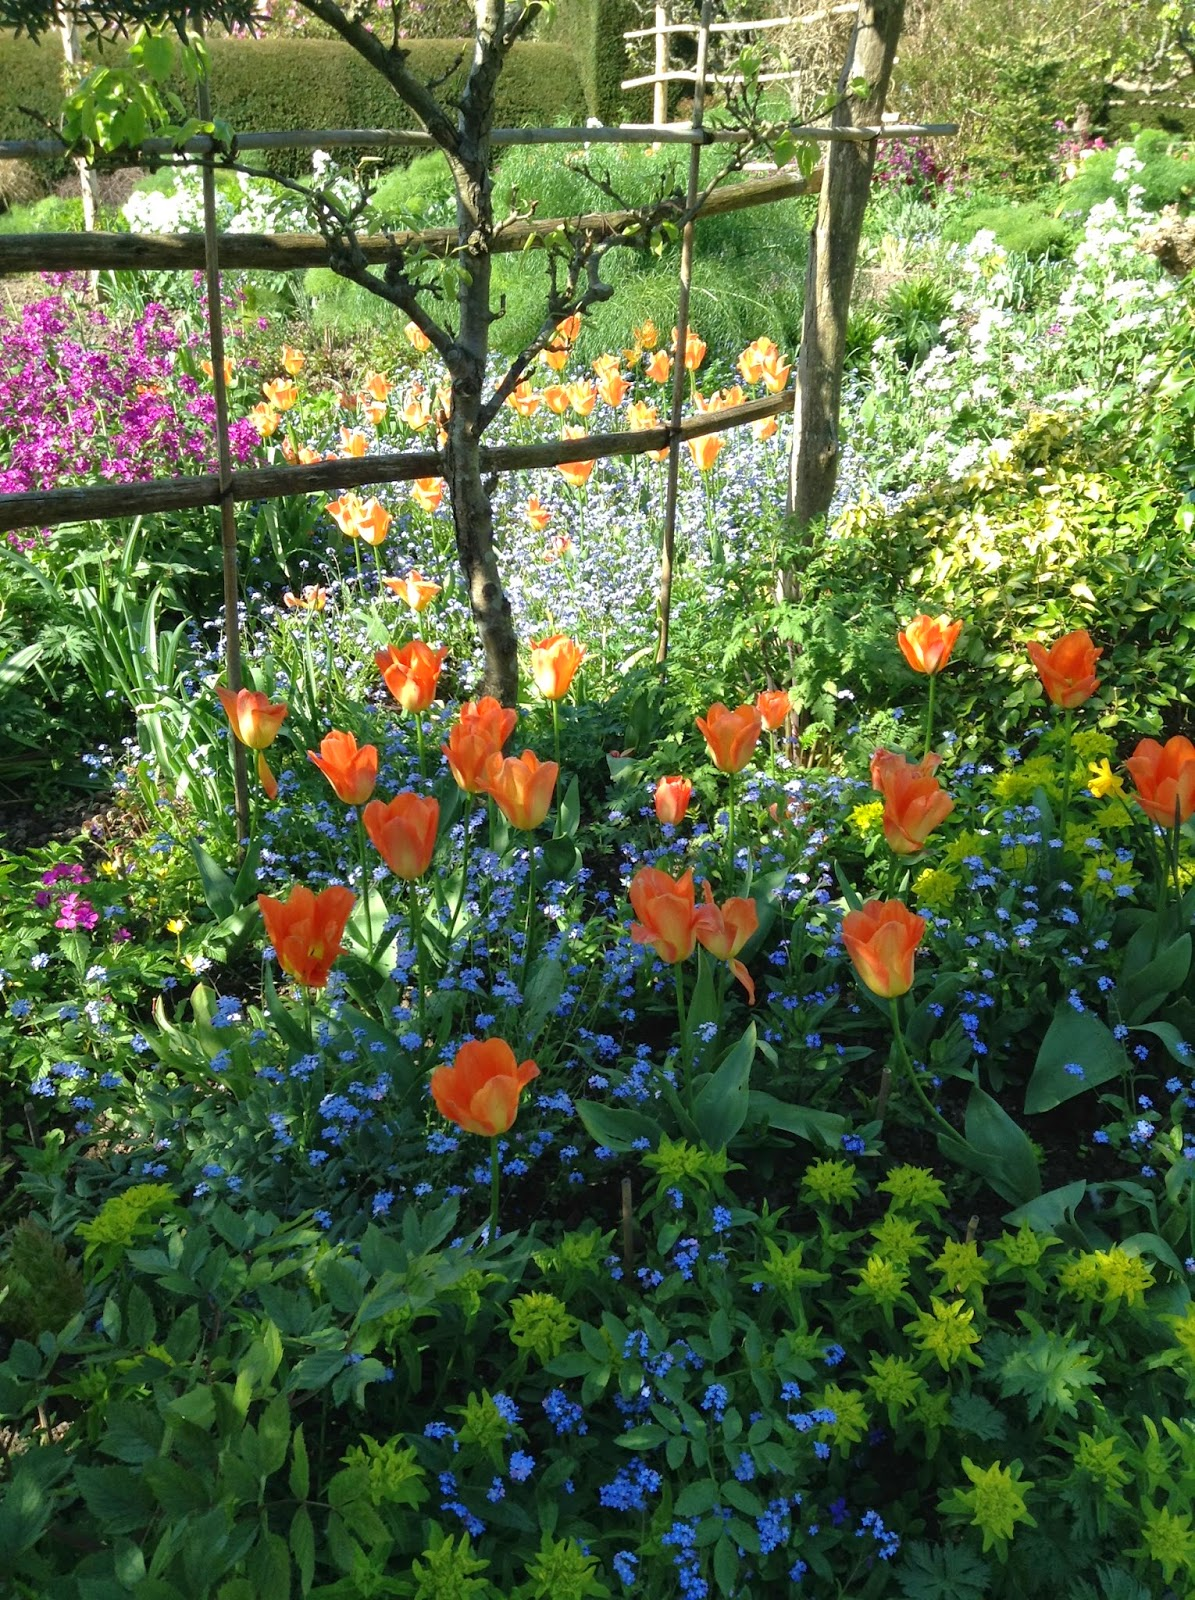 Tulipa, Euphorbia and Myosotis in the Orchard Garden, Great Dixter - Photo by Noemi Mercurelli